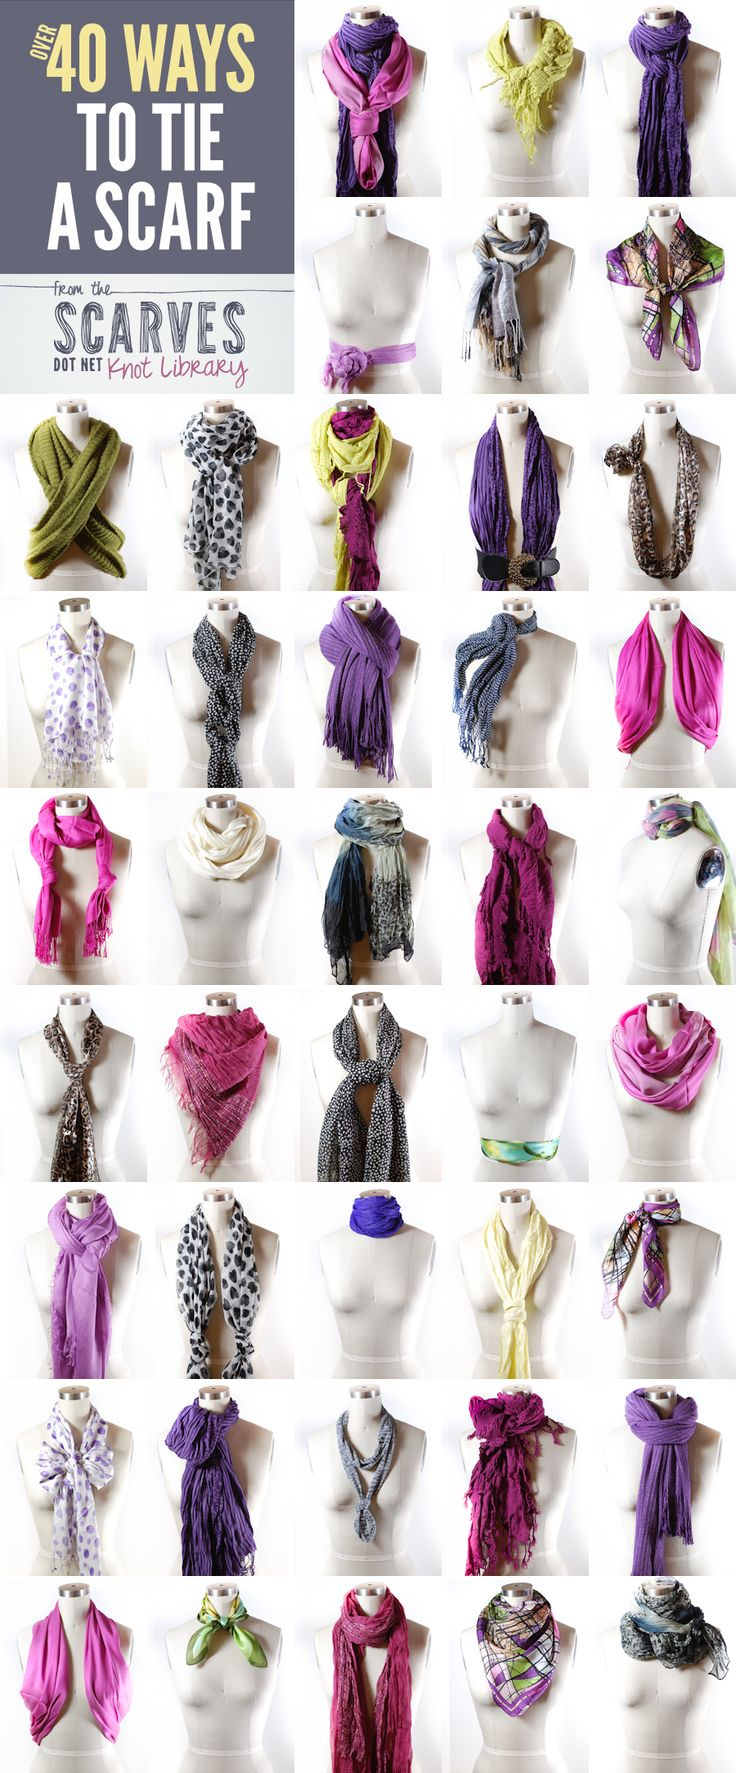 50+ Ways to Tie a Scarf. Go to their site Scarves(dot)net. Scroll down to the Resources links, and click on the Master List of Scarf Knots...and there you go!